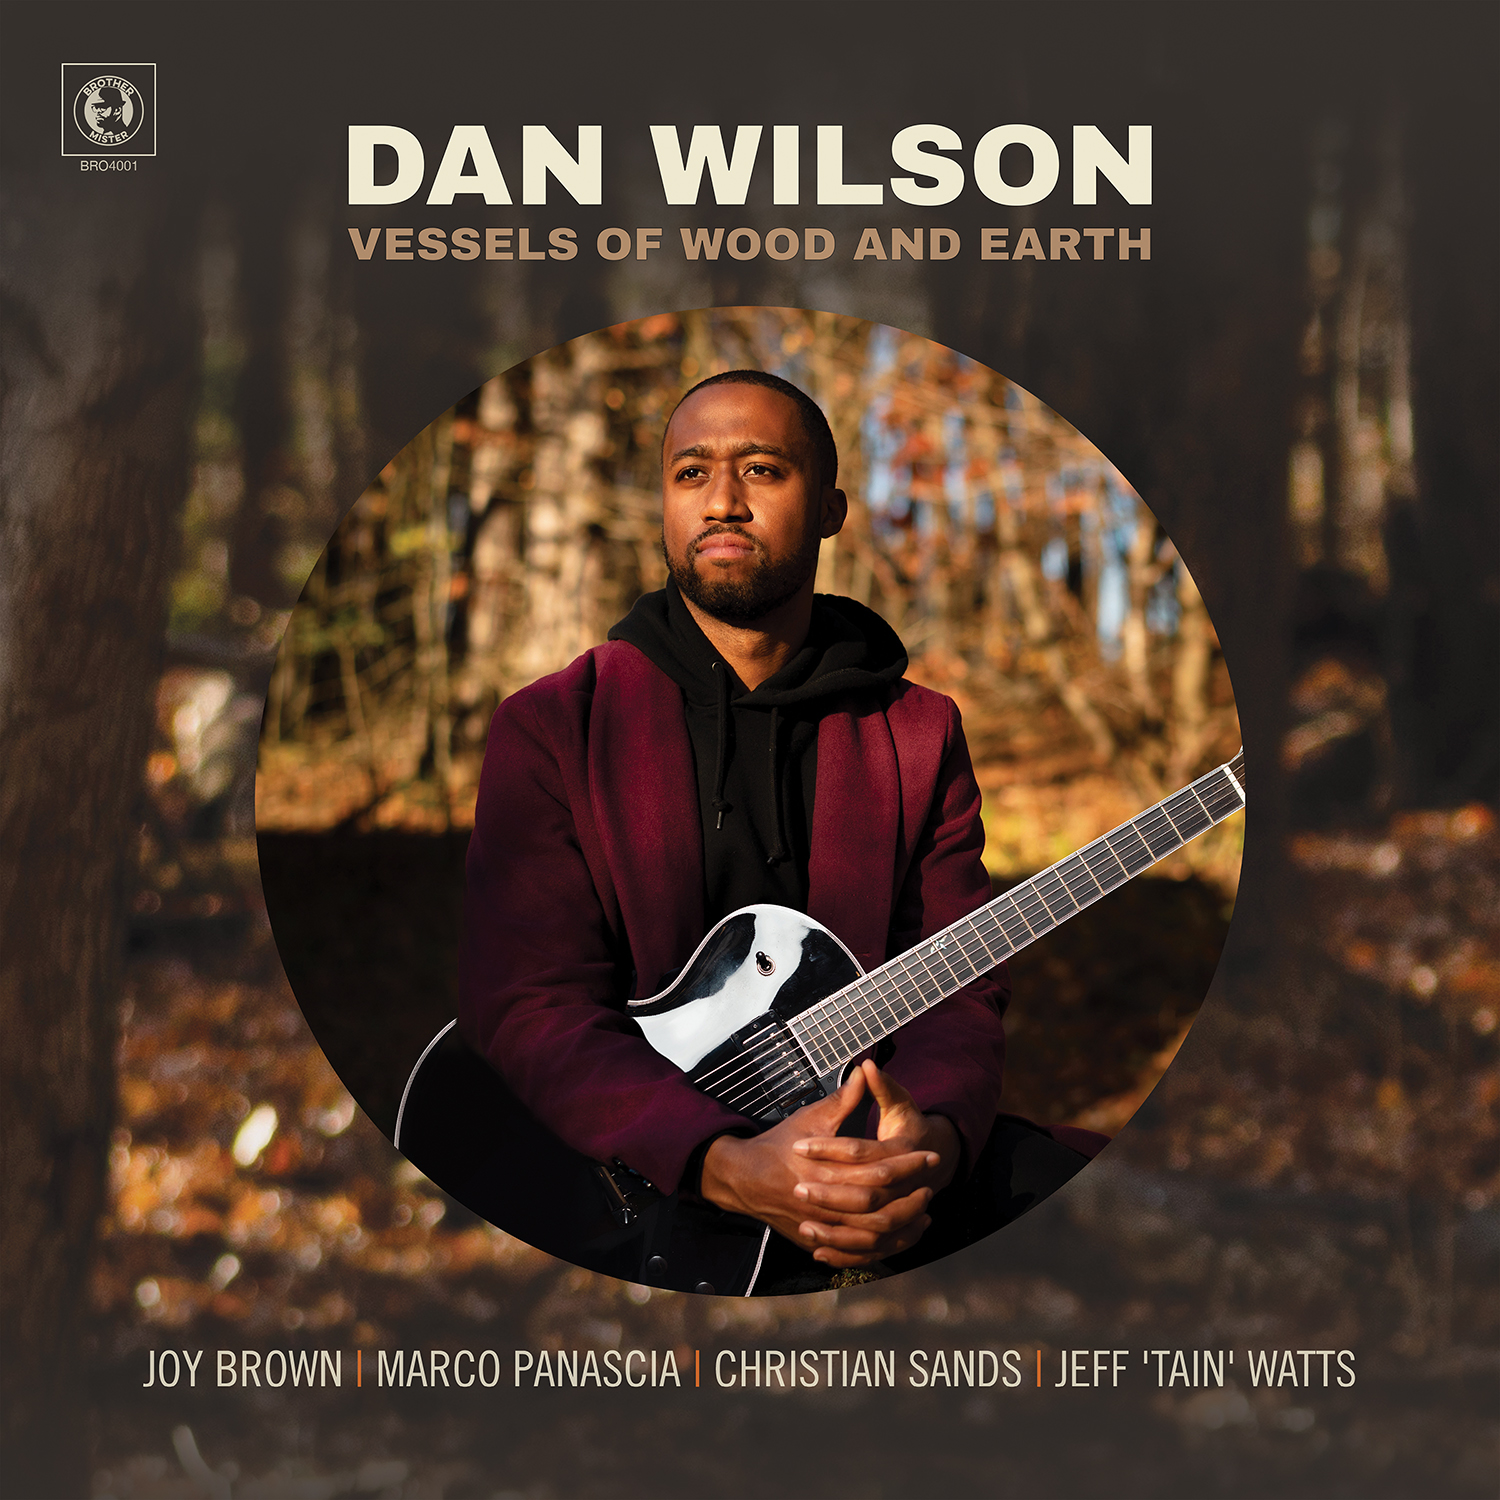 DAN WILSON - Vessels of Wood and Earth cover